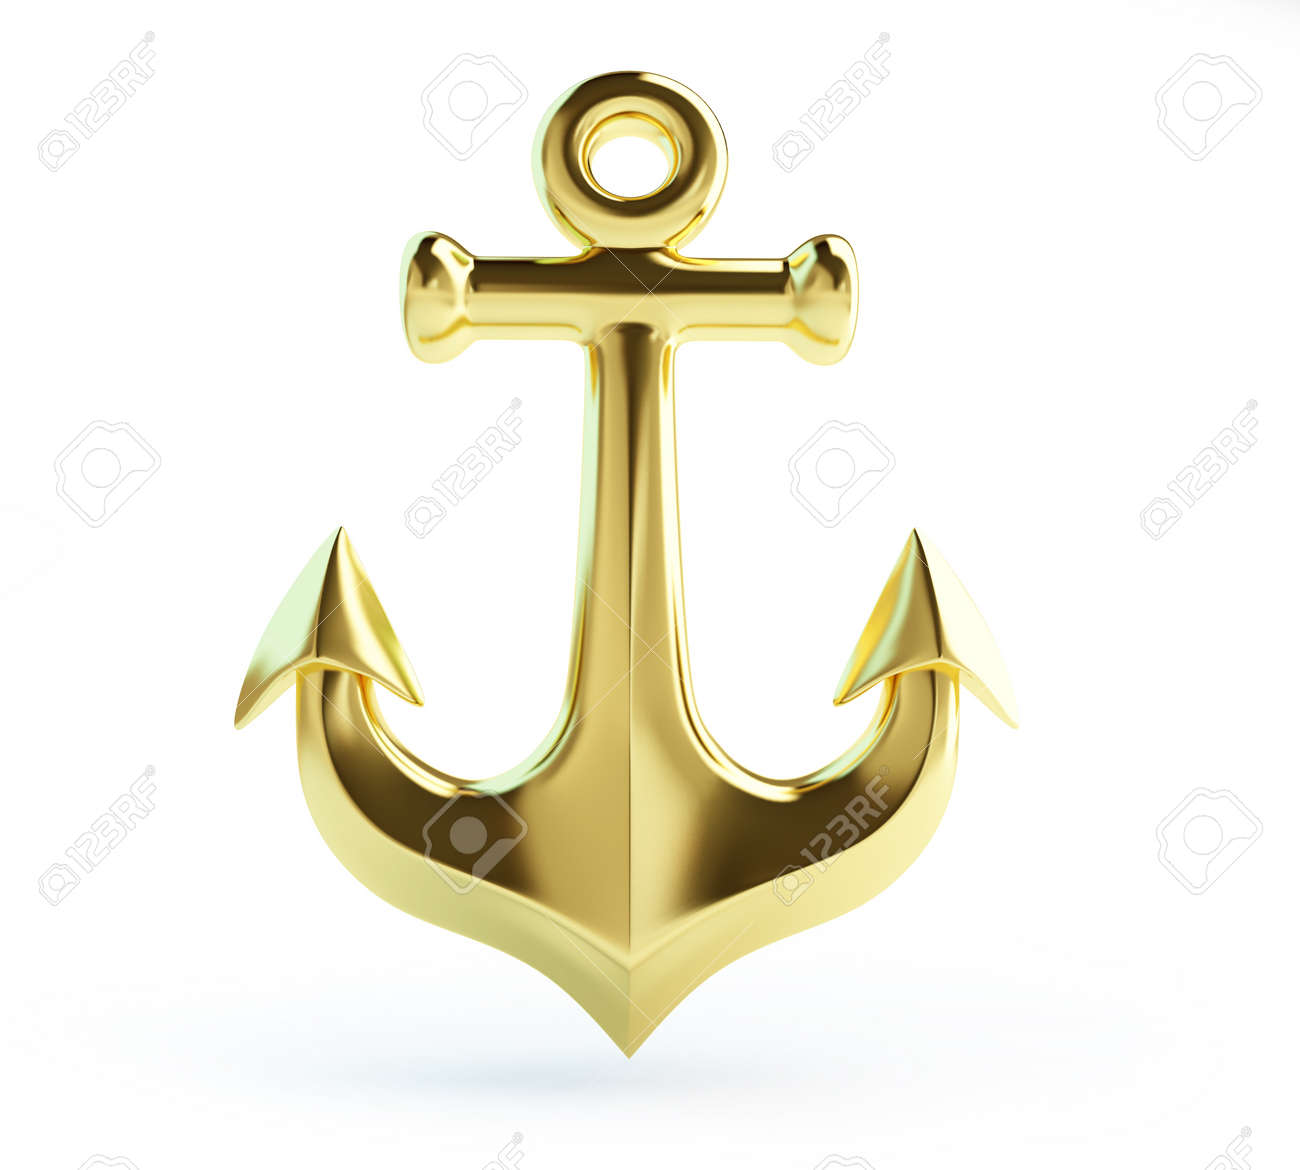 Old Gold Anchor On A White Background Stock Photo